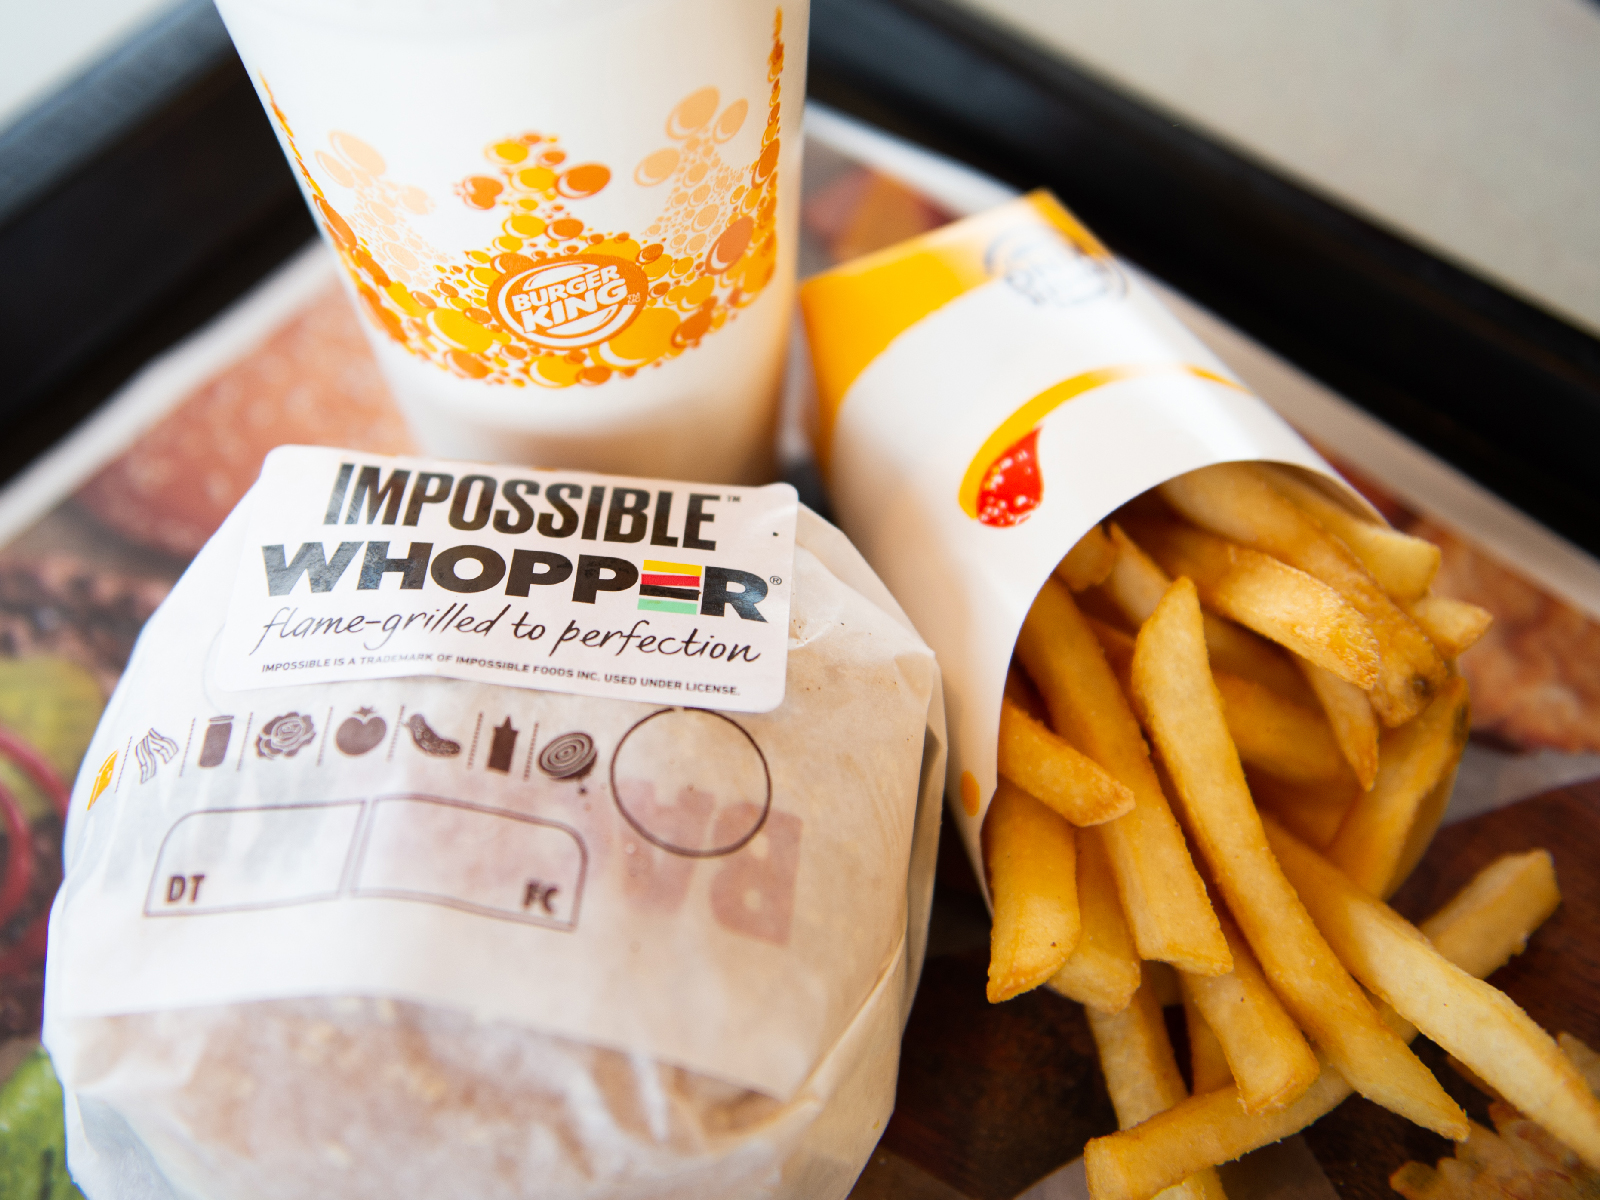 If You Ordered an Impossible Whopper You're Probably Not a Vegetarian